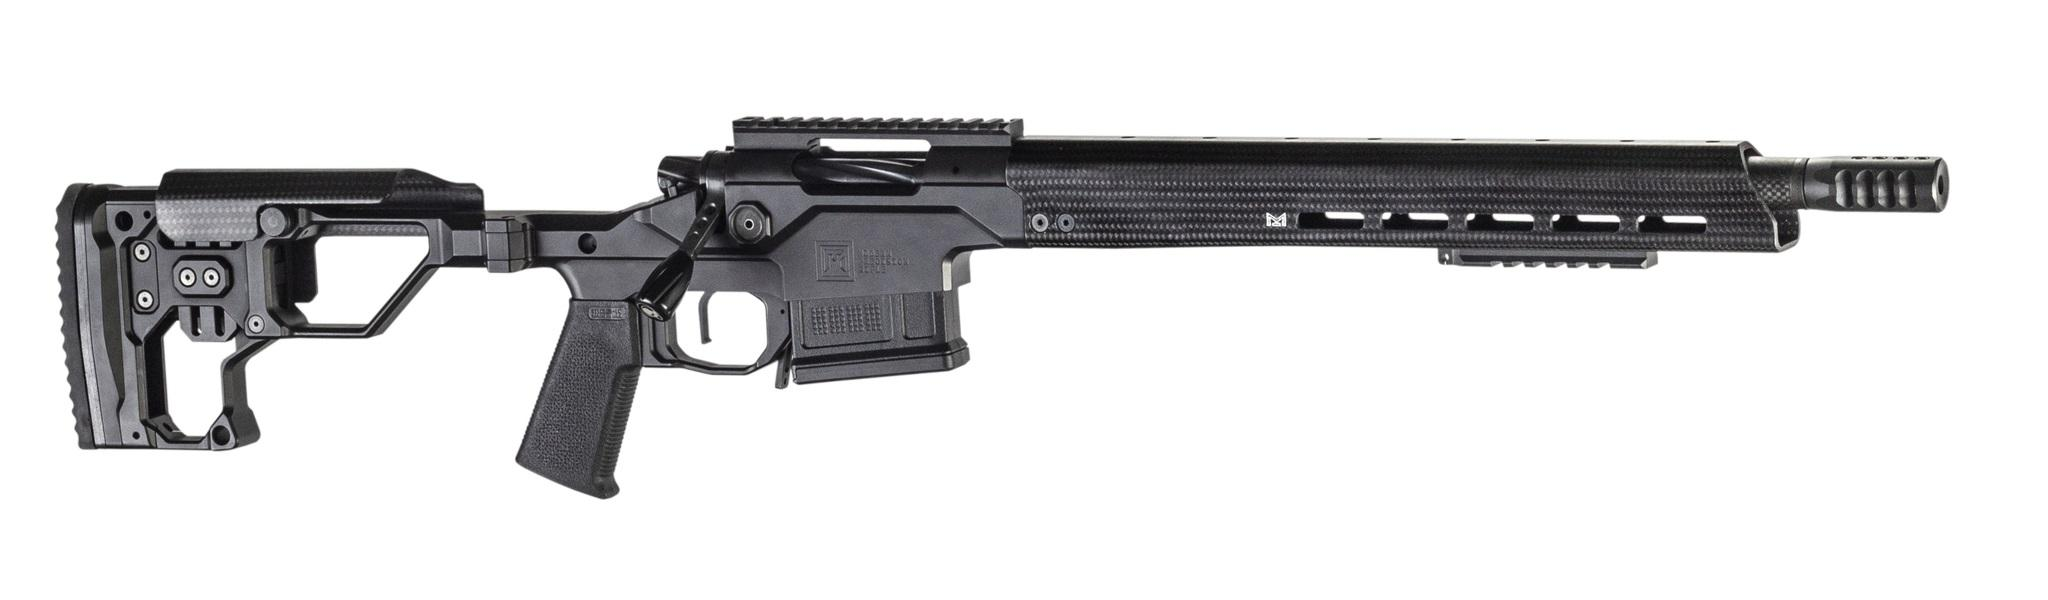 MPR 308WIN CHASSIS BLK 16 MB - 801-03001-00